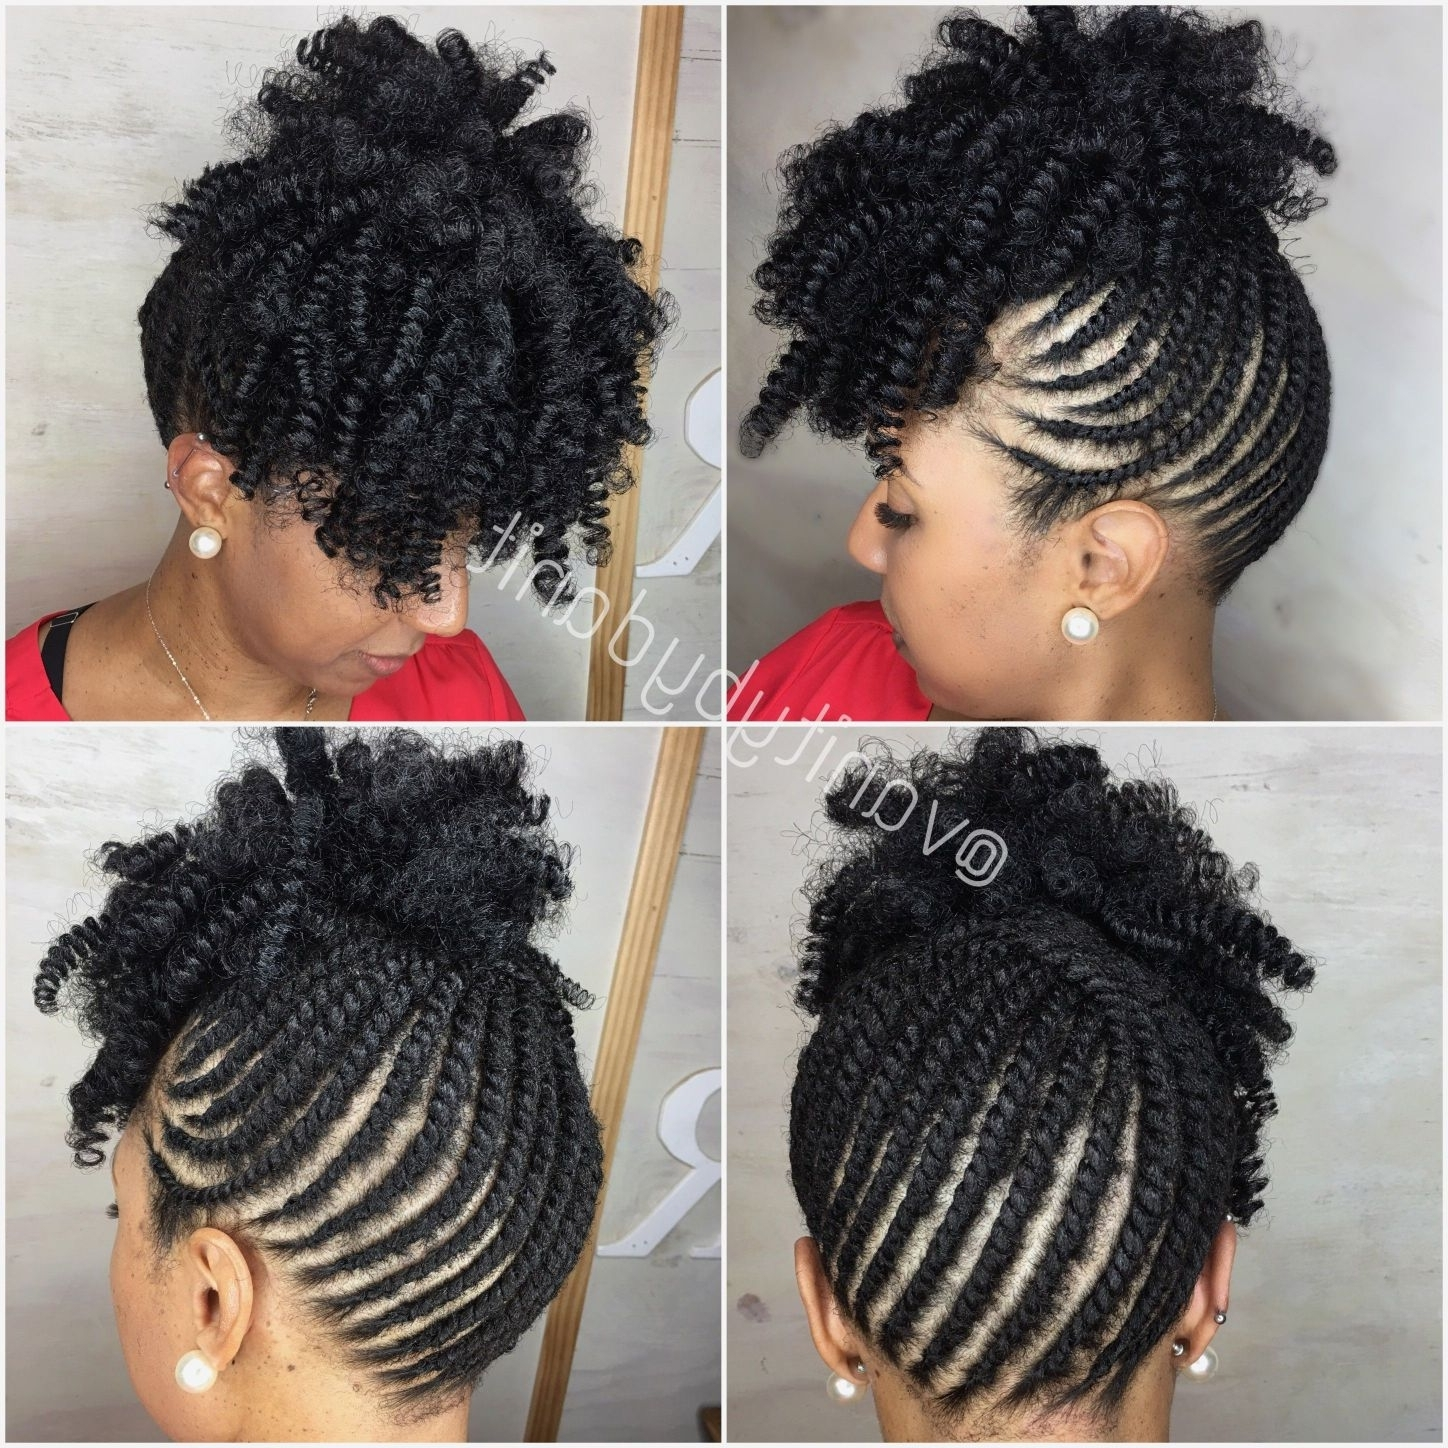 French Braid Hairstyles Natural Hair Beautiful Braided For Inside Newest Braided Hairstyles For Short Natural Hair (View 8 of 15)